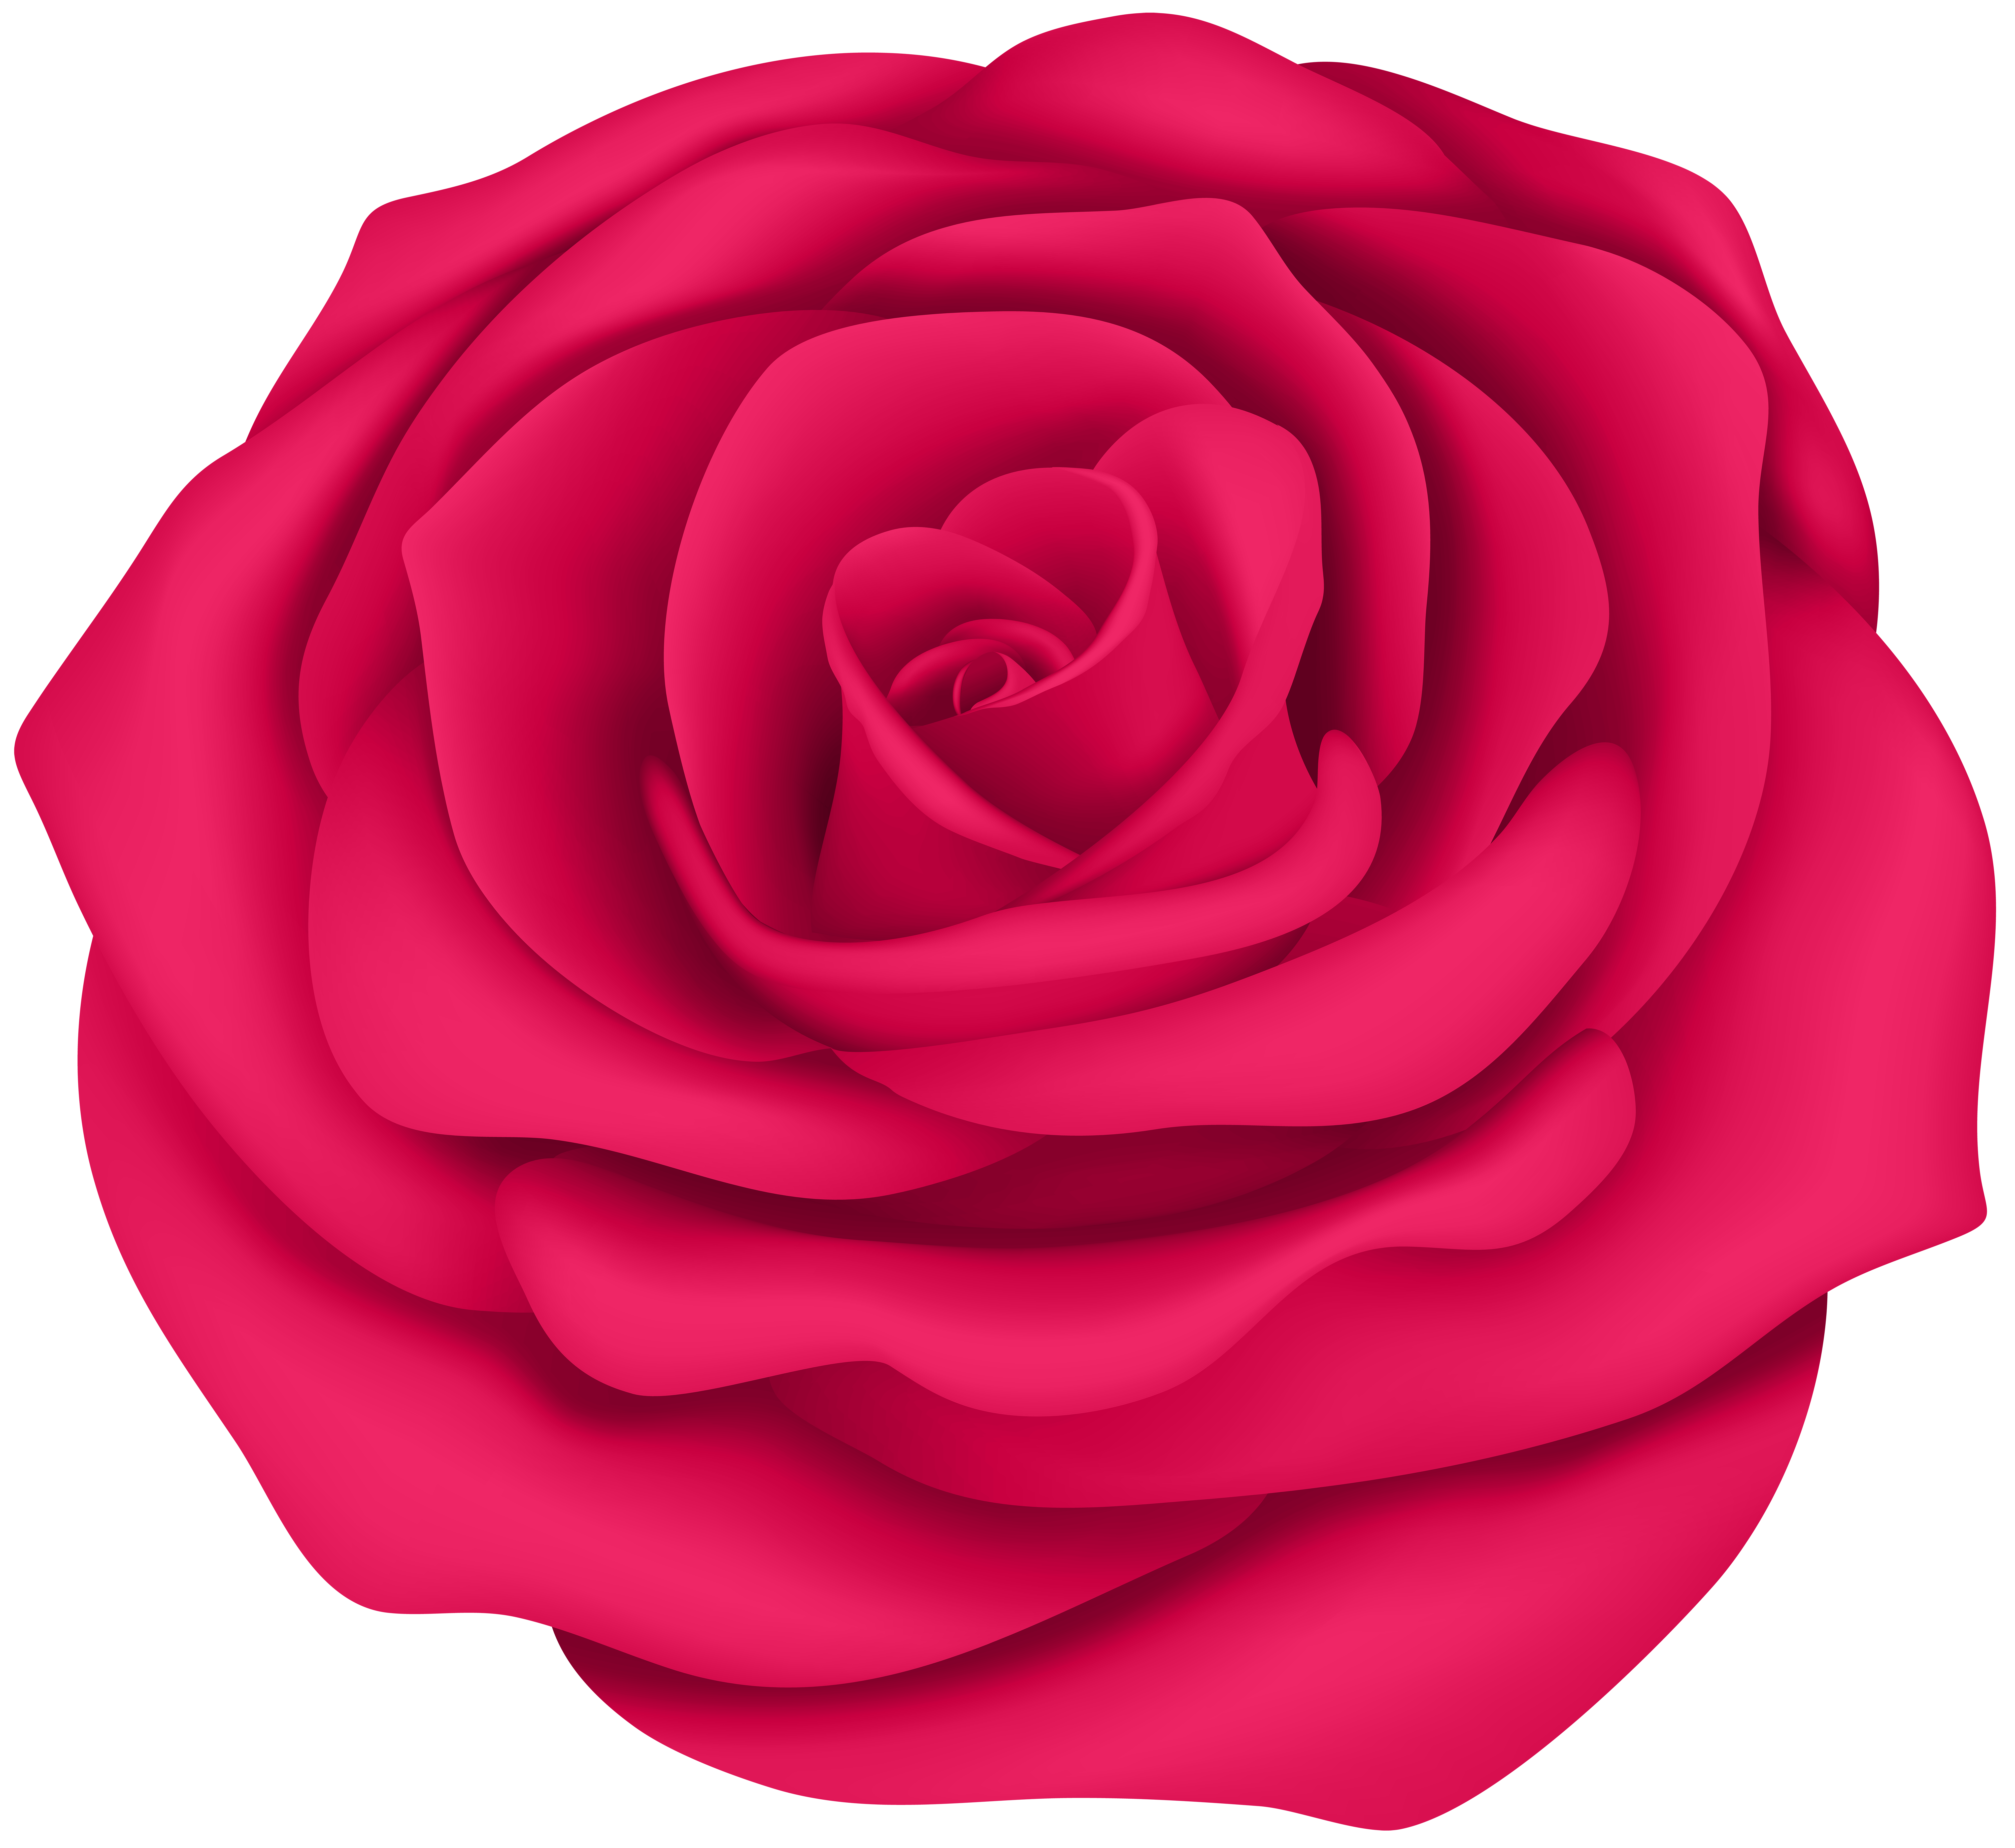 Rose flower at getdrawings. Clipart roses money